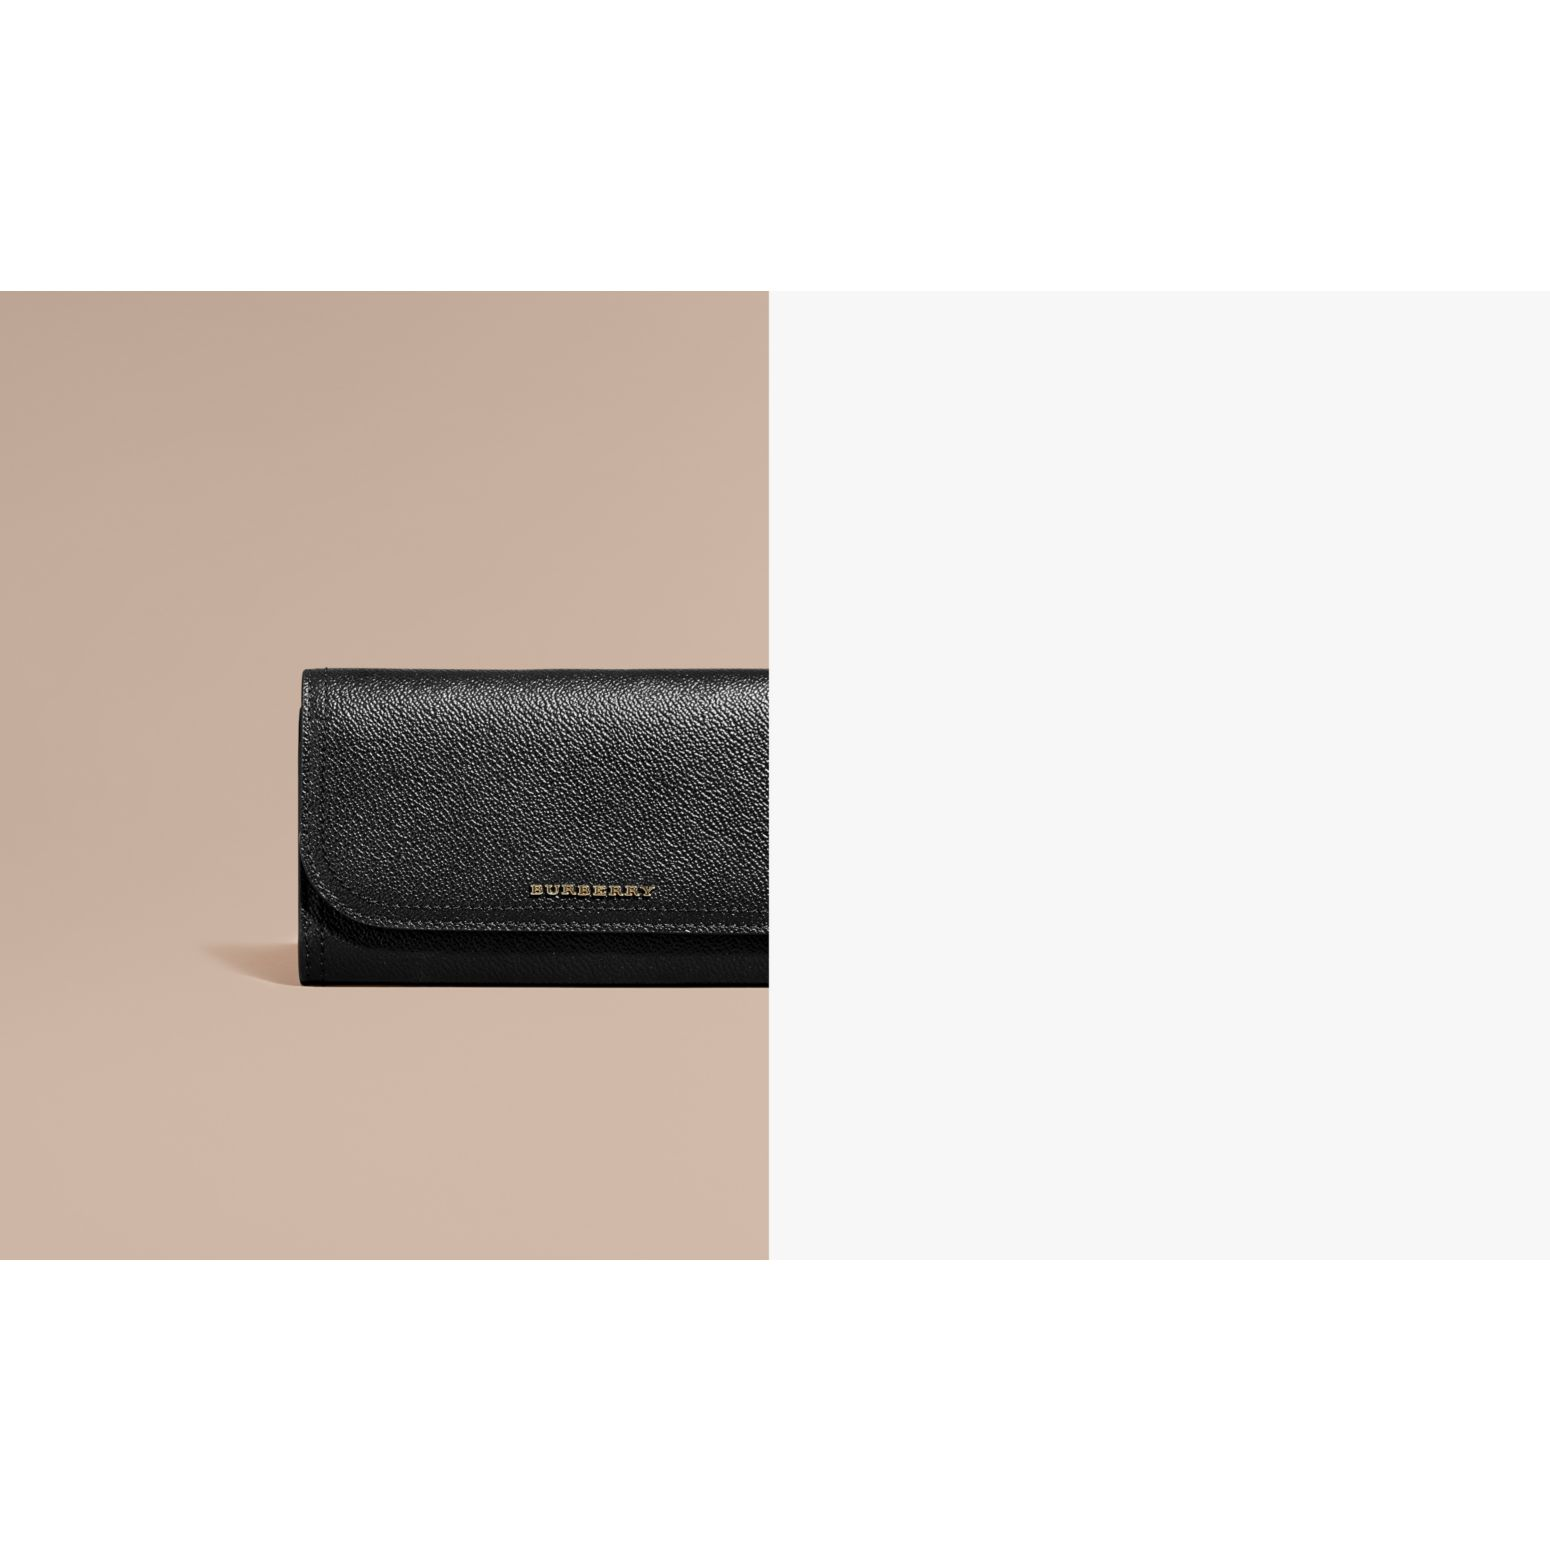 Grainy Leather Slim Continental Wallet in Black - Women | Burberry Australia - gallery image 2